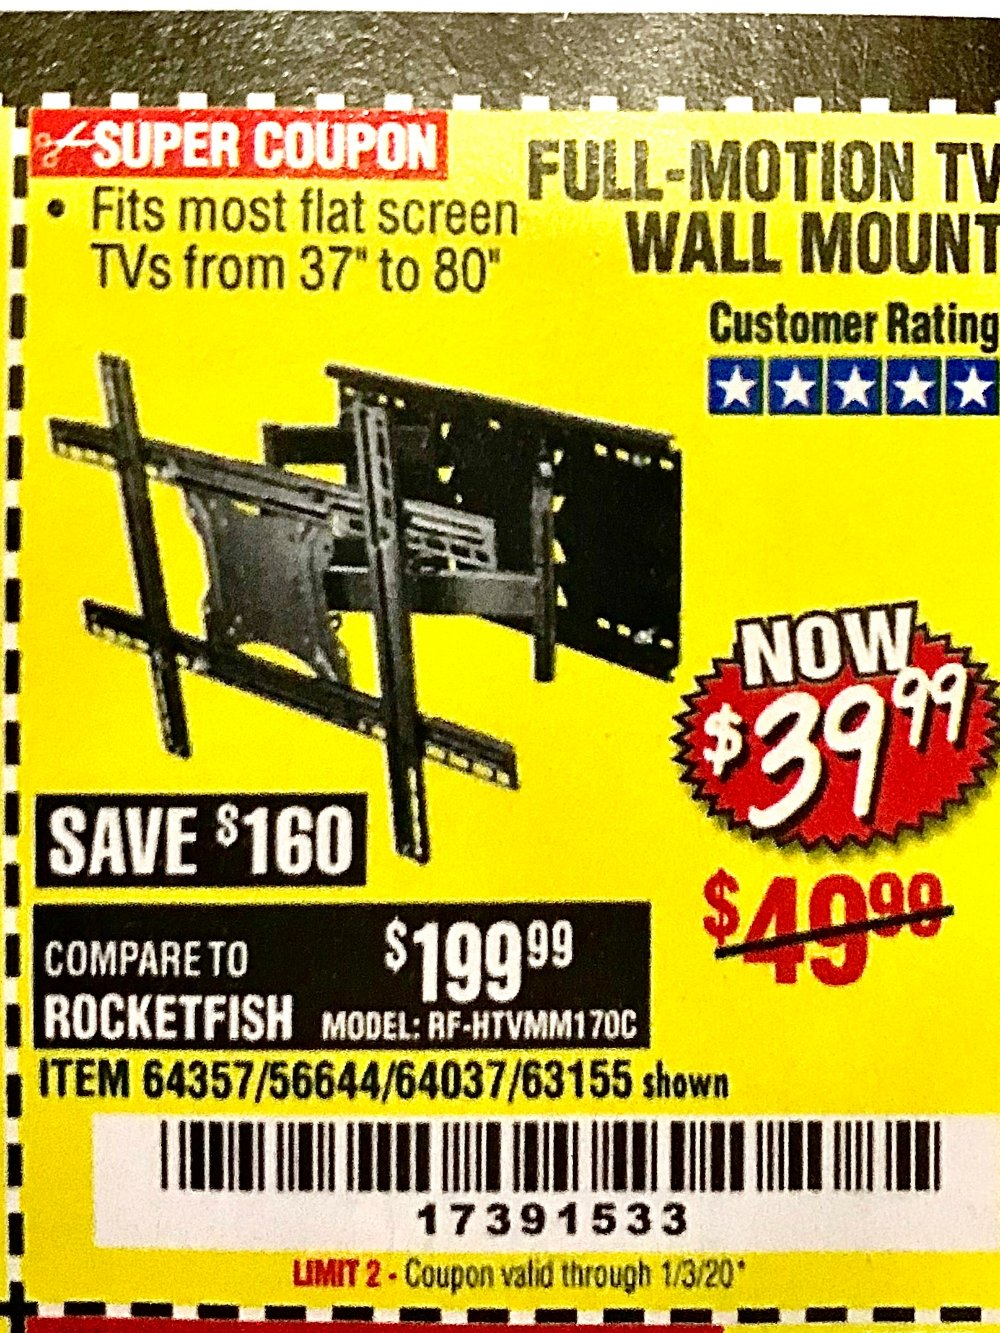 Harbor Freight Coupon, HF Coupons - 37-80 in FULL-MOTION TV WALL MOUNT